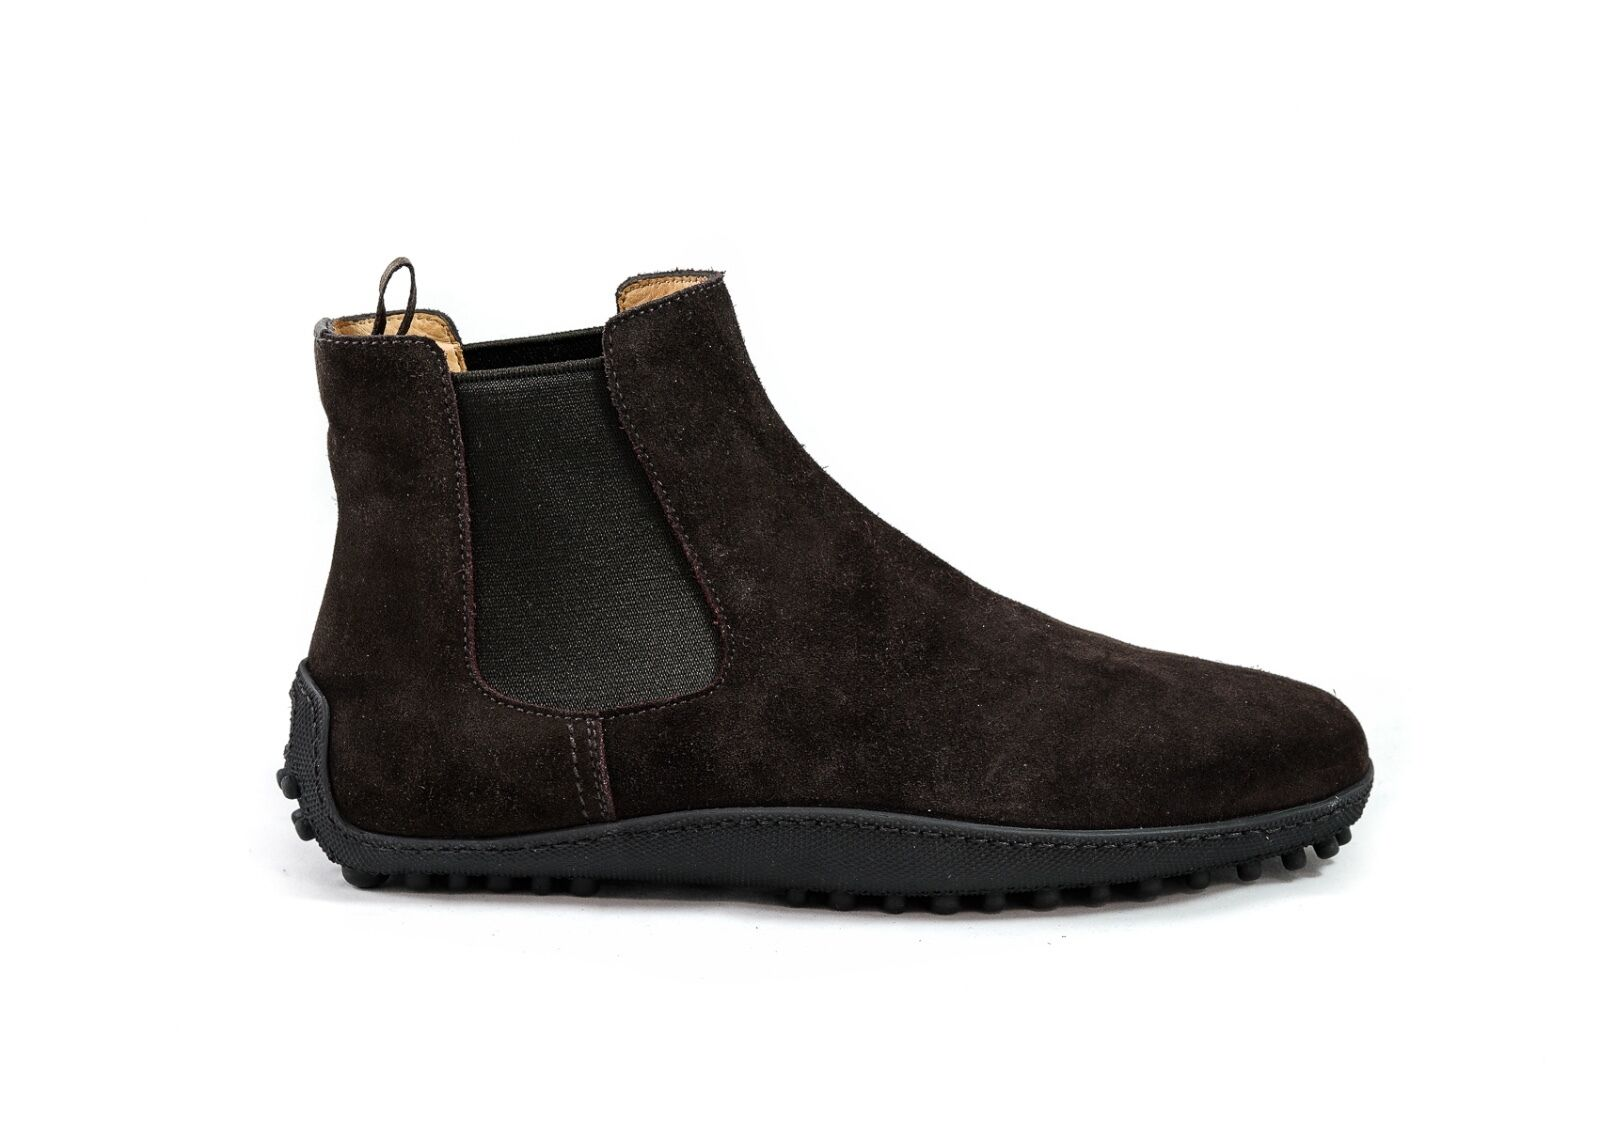 Car Shoe KUT531 Brown Suede Boot New in Box Scamosciato 1